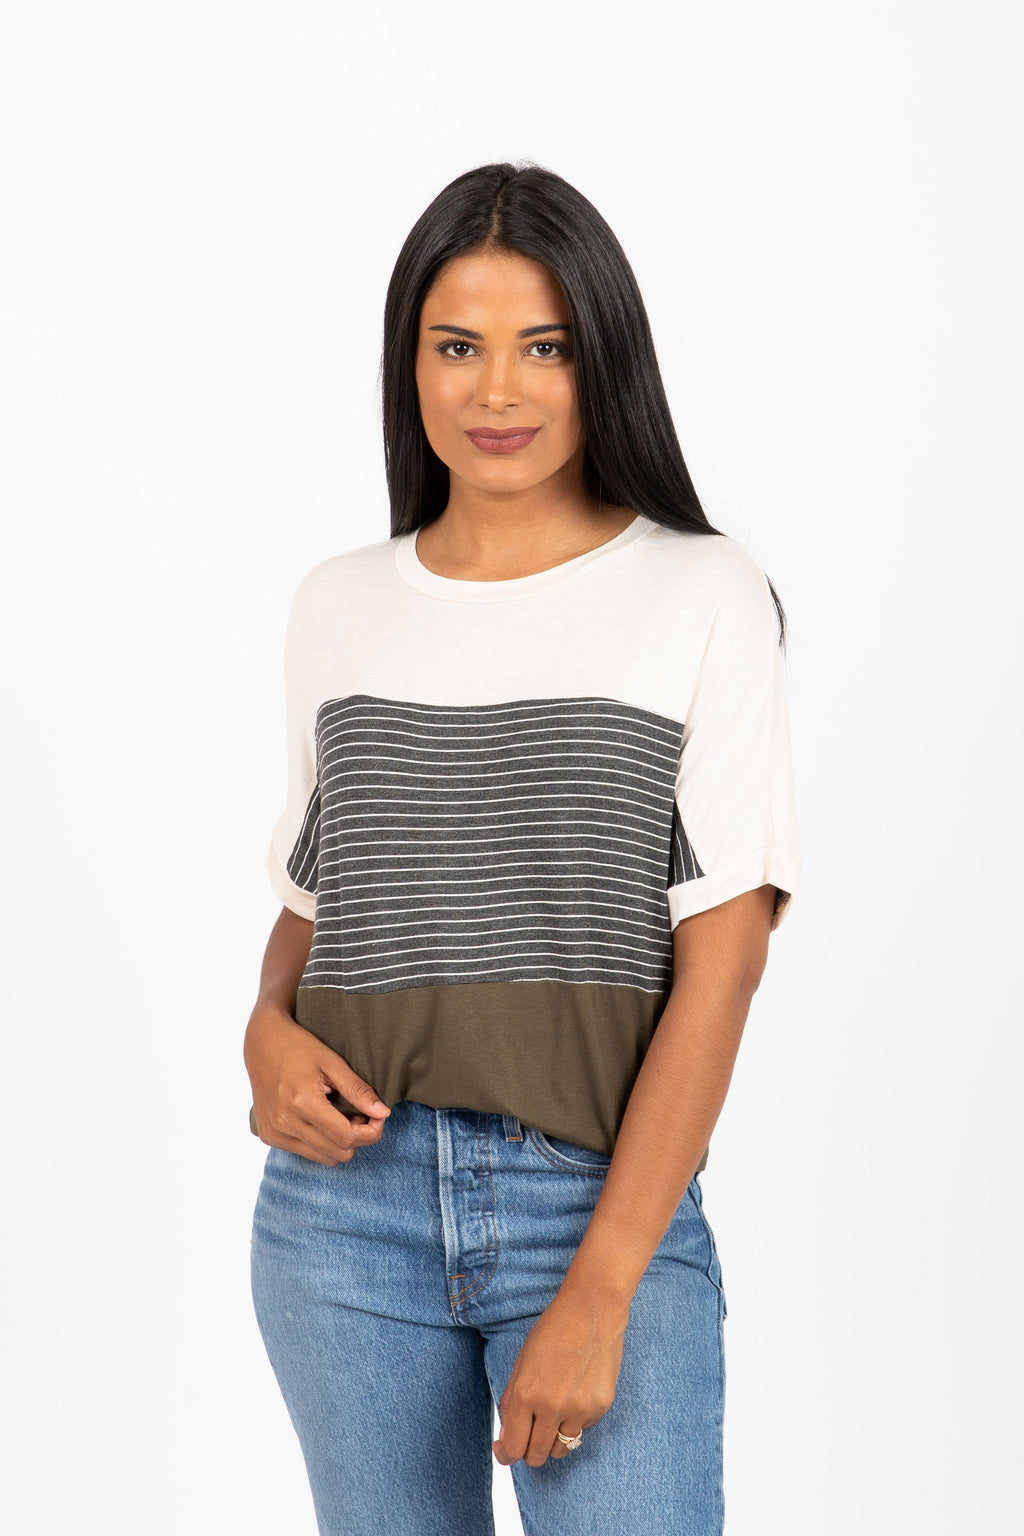 The Monday Striped Colorblock Tee in Olive